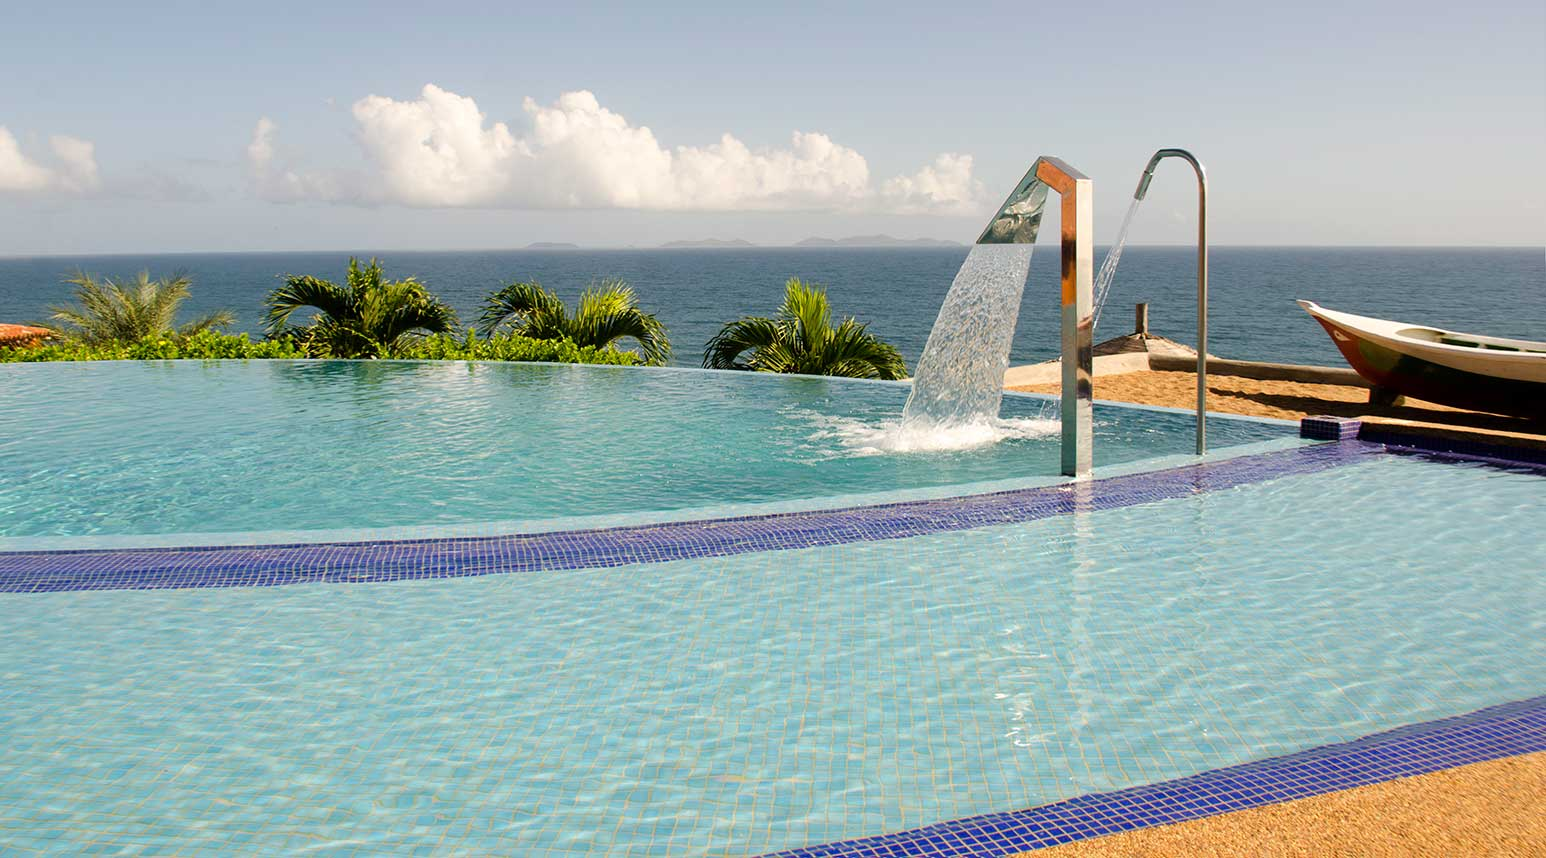 punta serpentina hotel spa pool - Cala Margarita Hotel & Residences